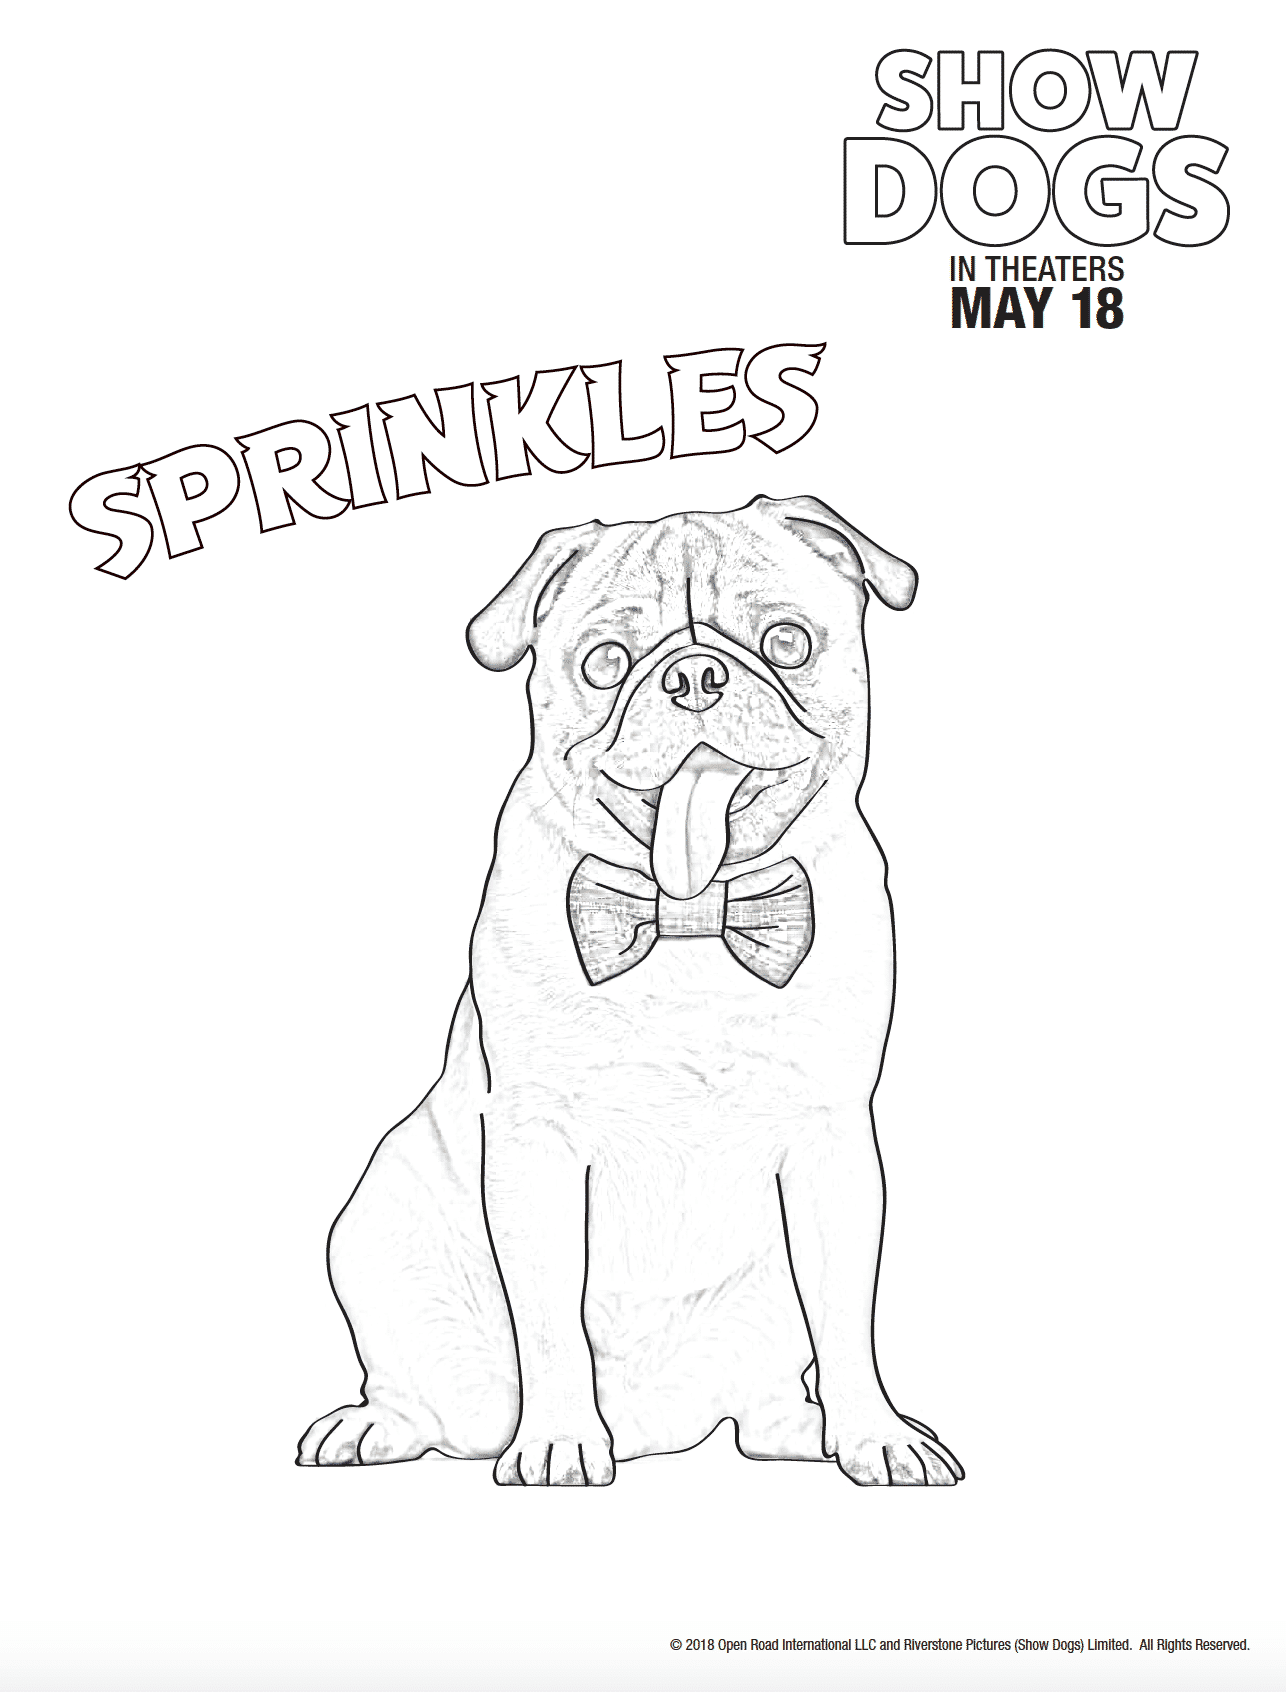 Show Dogs Movie: Free Coloring Sheets #ShowDogsMovie - Lady and the Blog